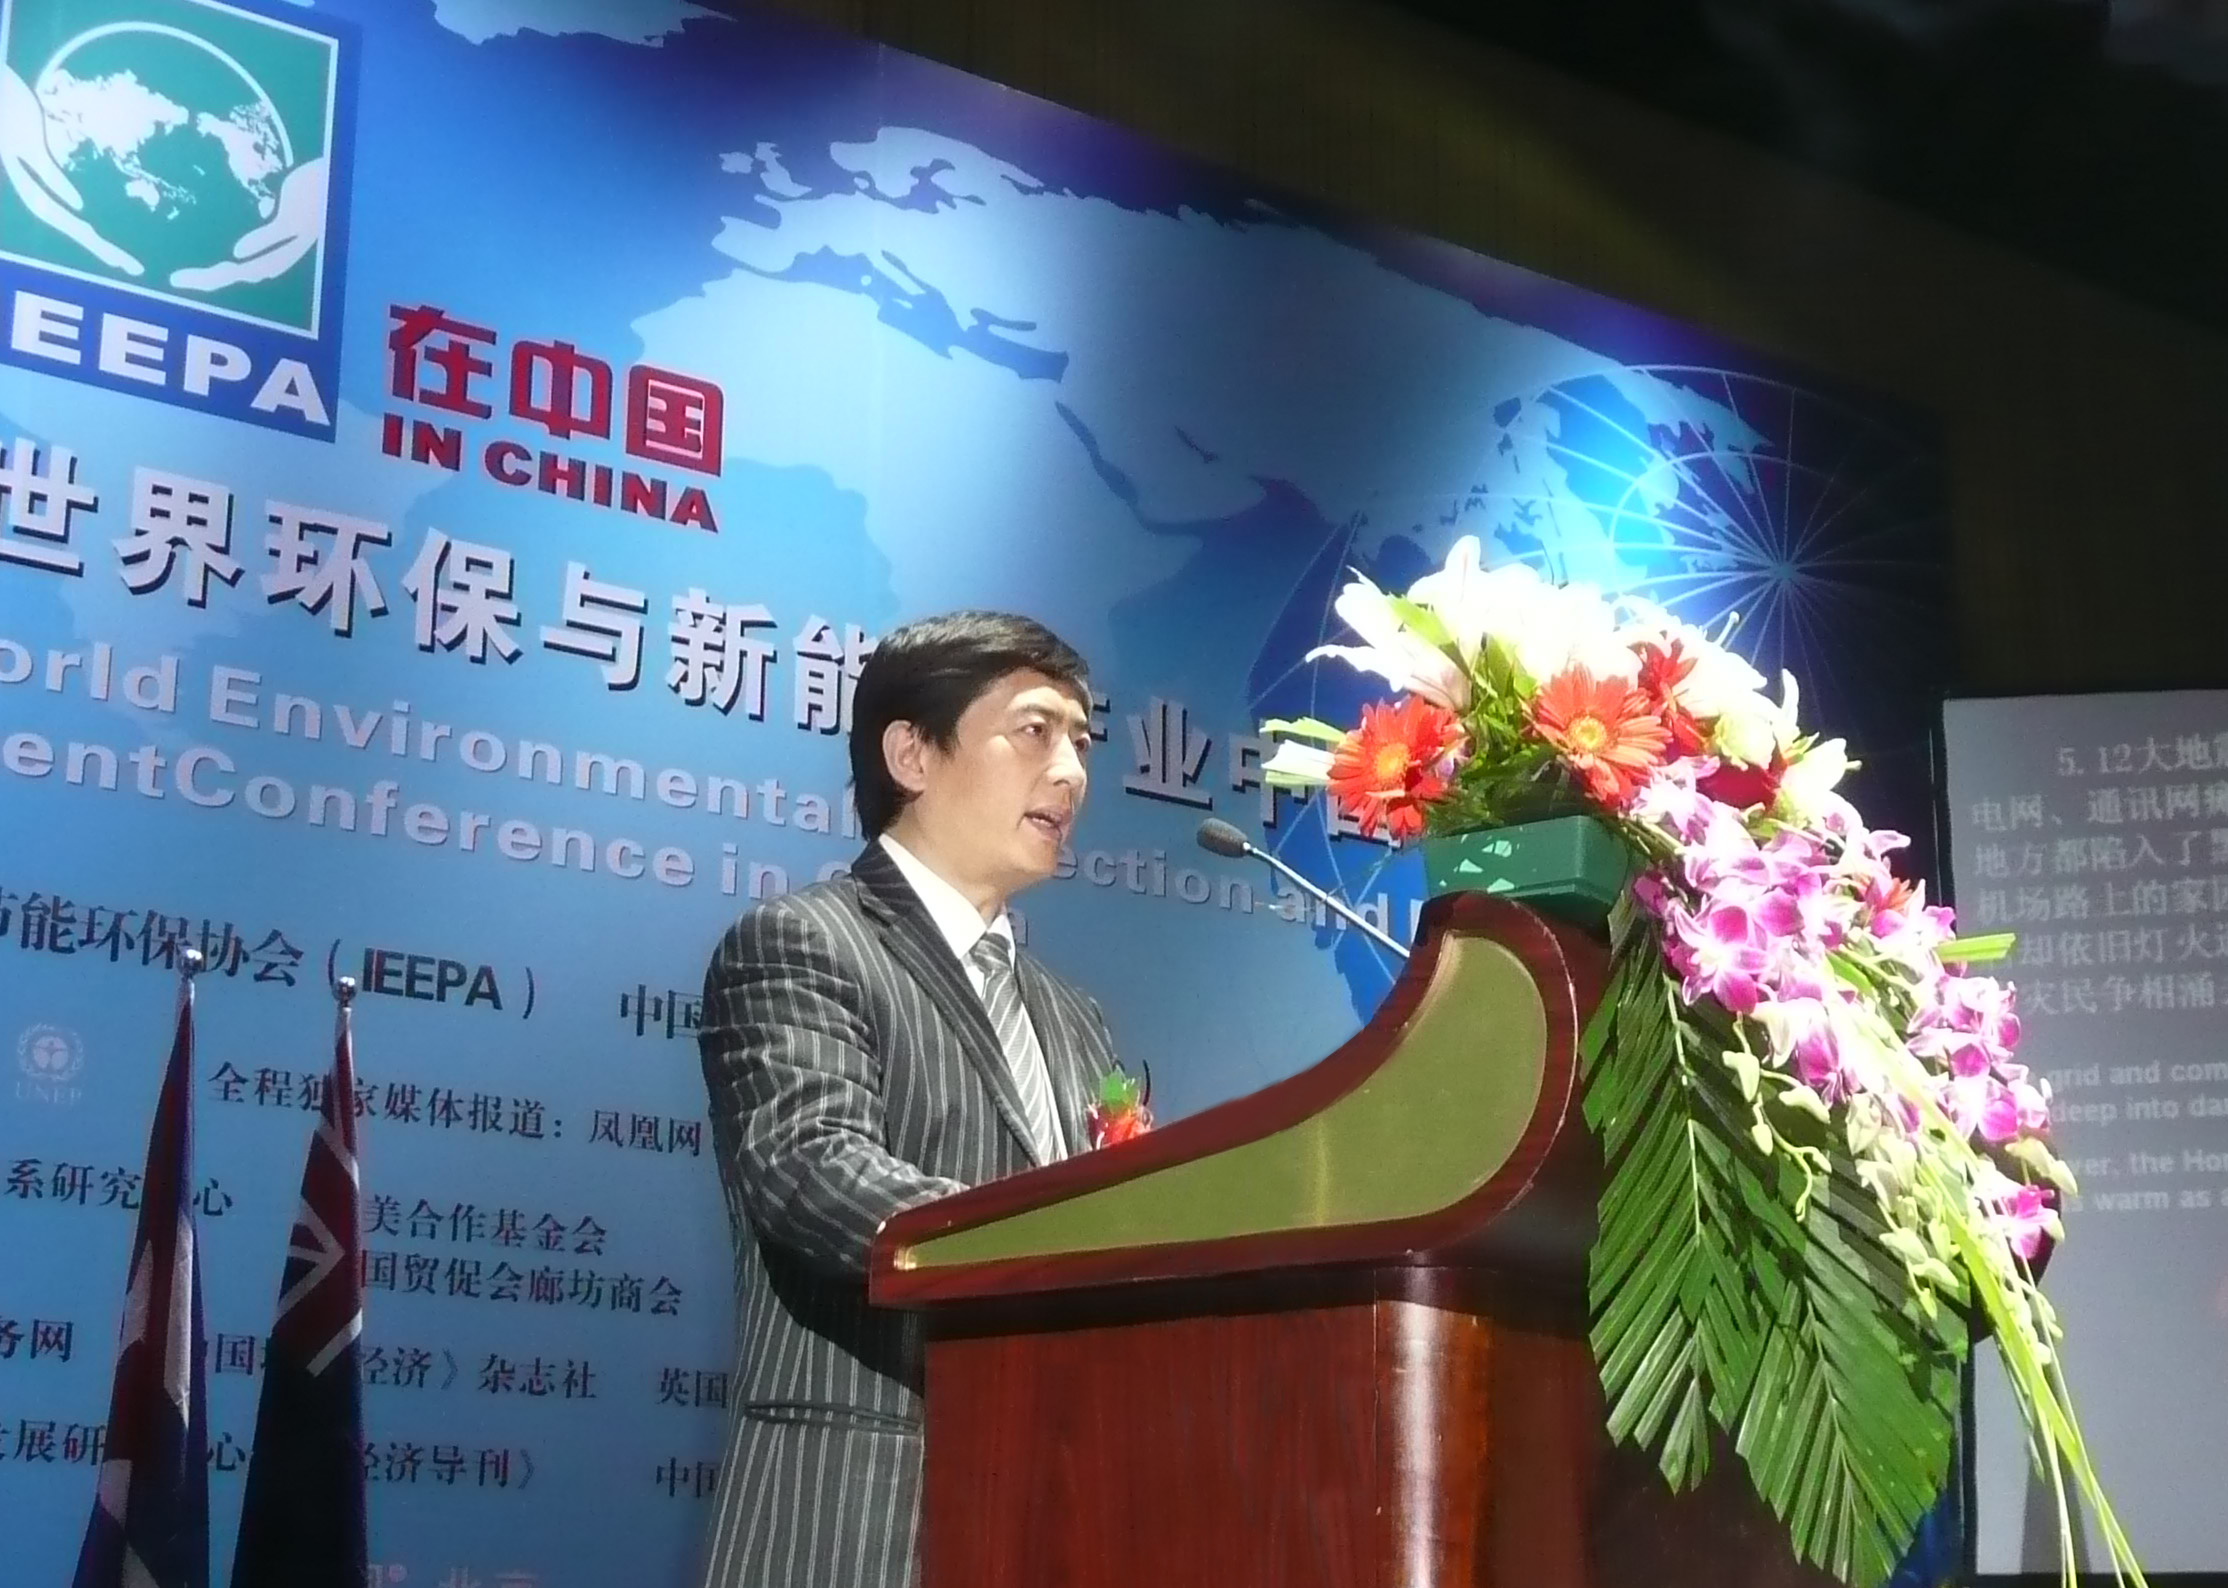 CEO Bin Chen Speaking at the Second World Conference on Environmental Protection and Alternate Energy in 2009 about Senlan inverters and Deep-blue air